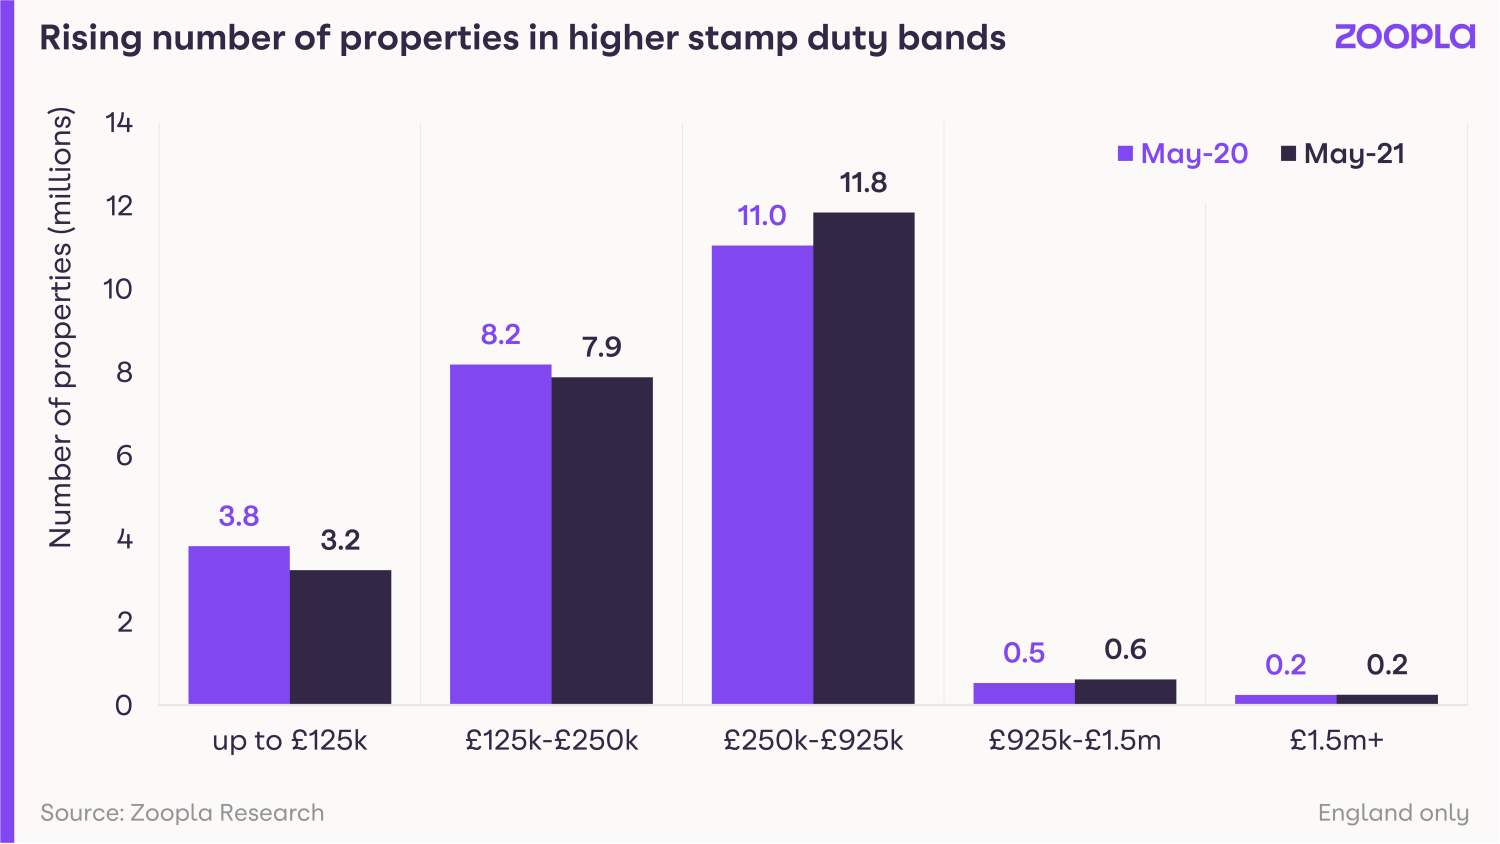 Graph showing the rising number of properties in higher stamp duty bands